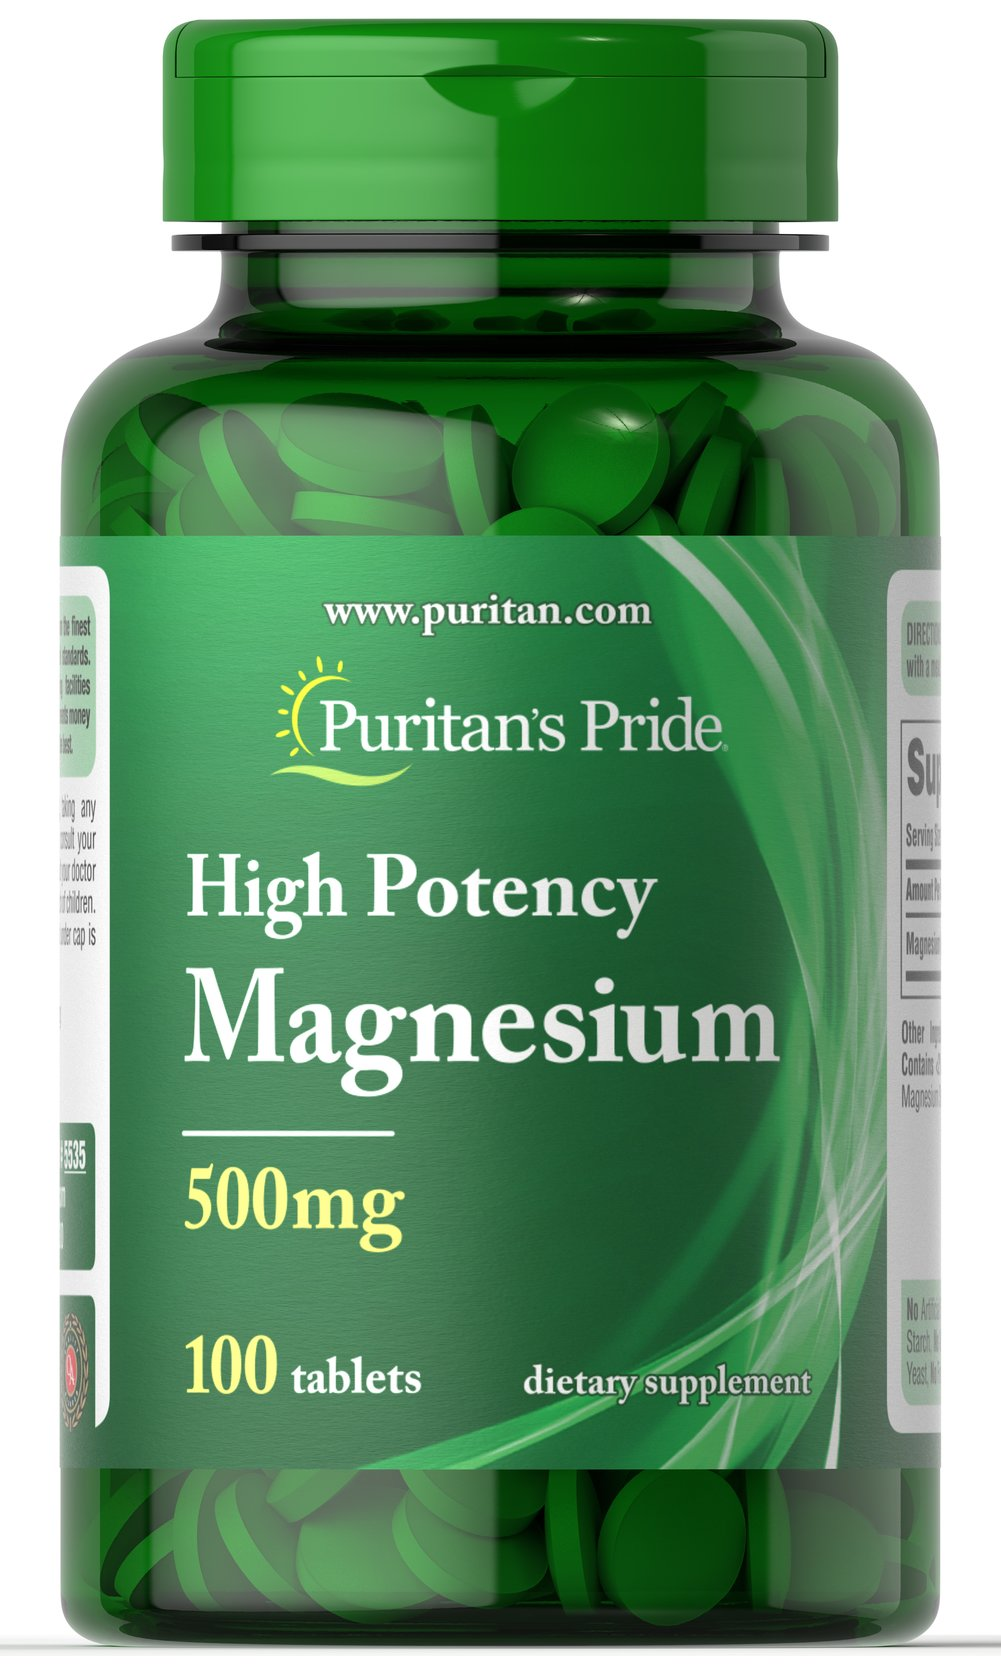 Magnesium 500 mg <p>Magnesium offers another option, besides Calcium, for supporting bone health.** Magnesium plays an essential role in maintaining bone mineralization, and is also involved in muscle contractions and nerve impulses.** Adults can take one caplet daily with a meal.</p> 100 Tablets 500 mg $9.79